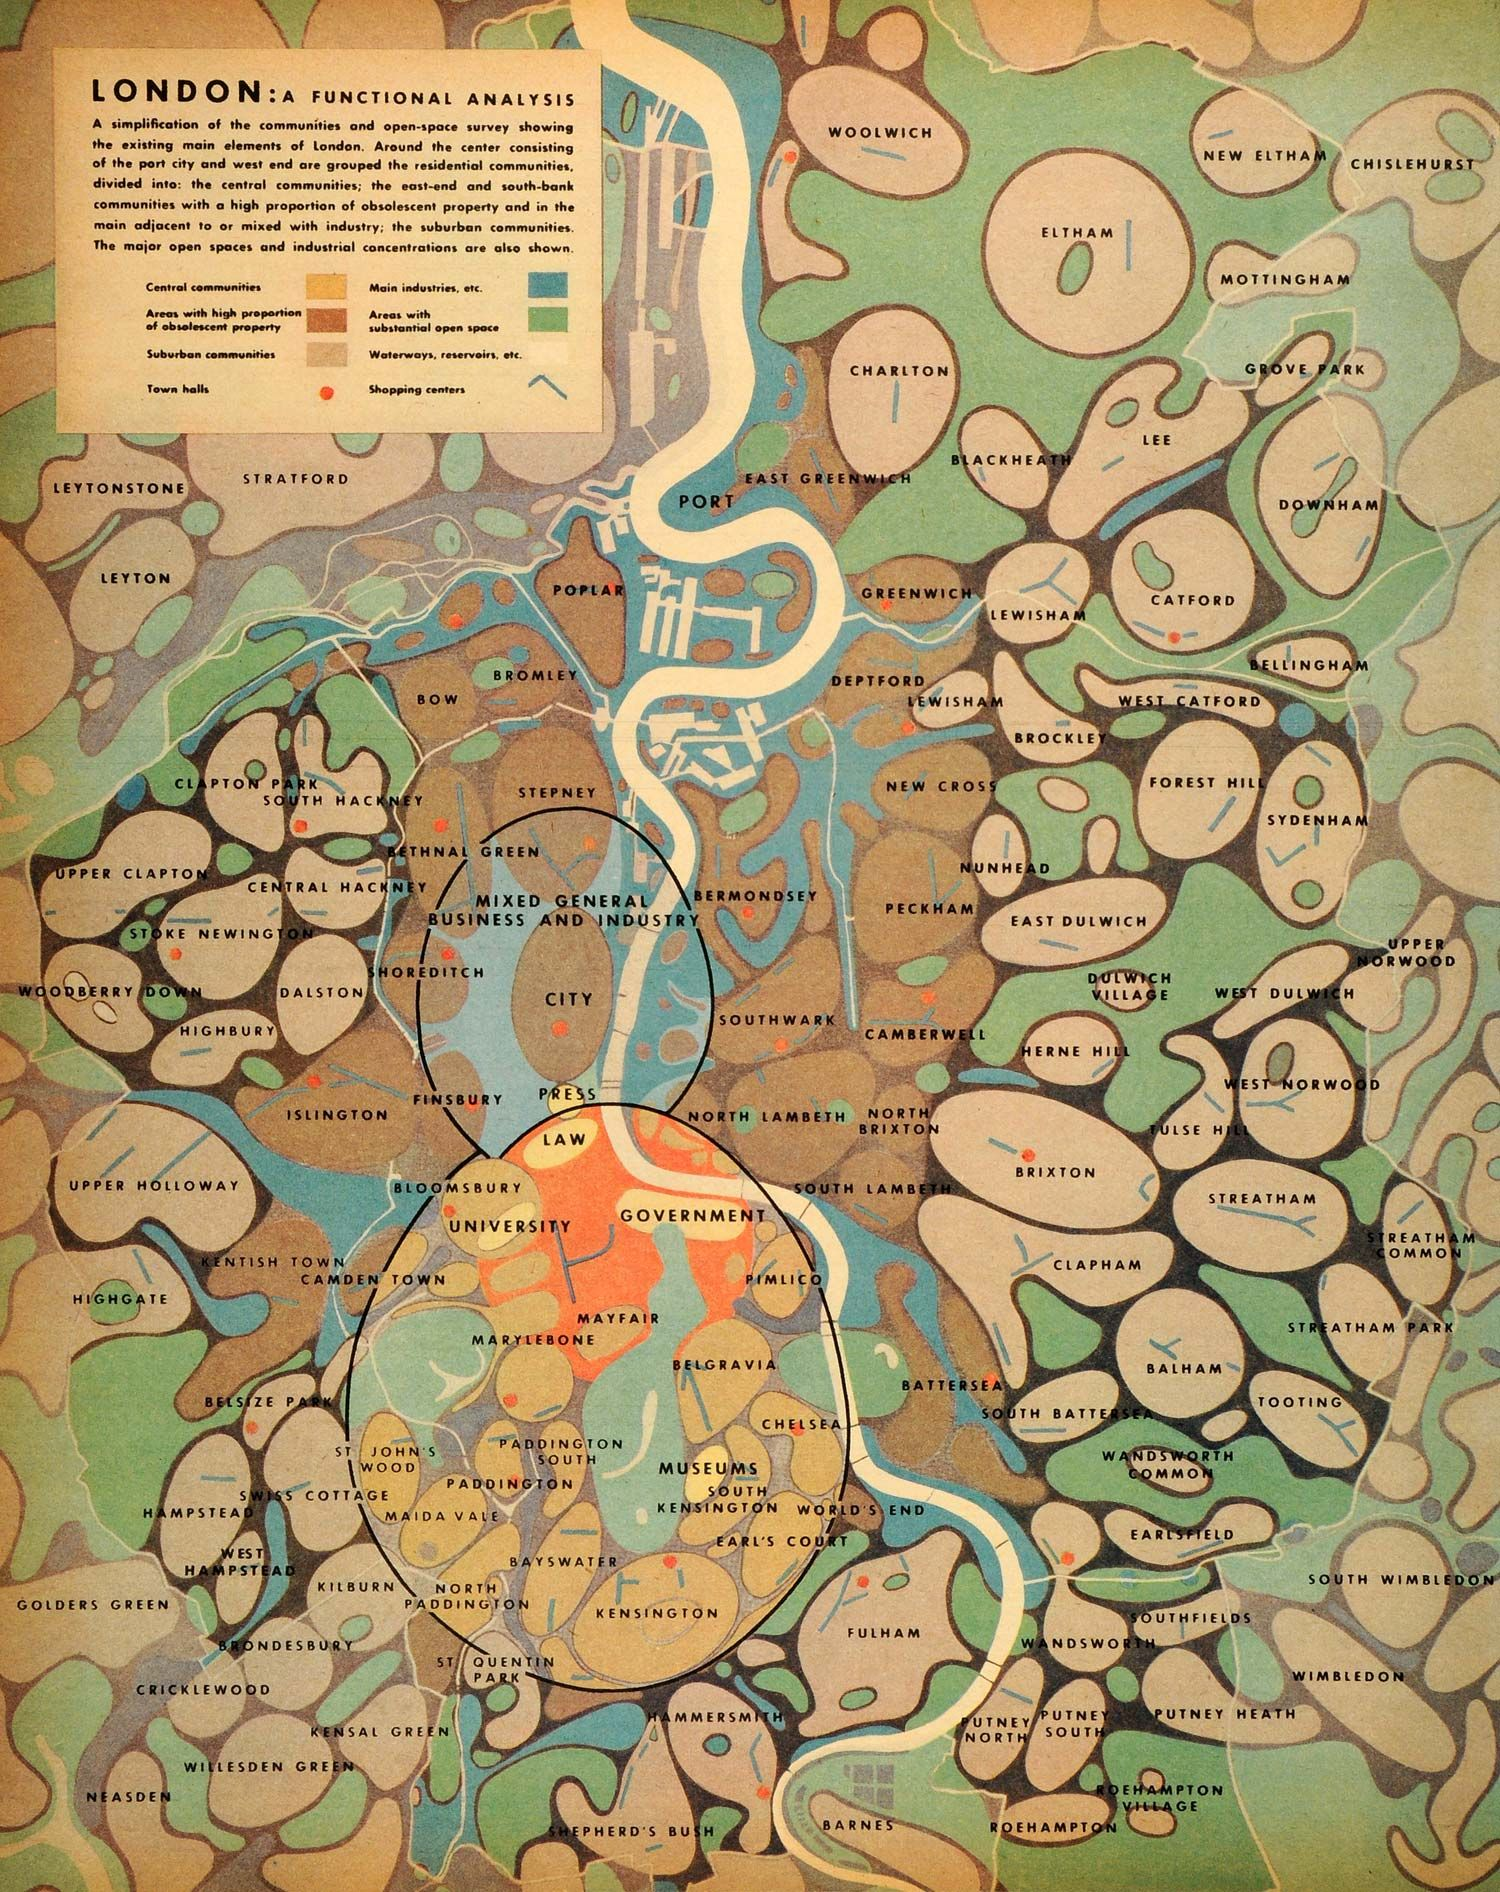 """London: a functional analysis"" from Patrick Abercrombie's post-war urban planning, 1944"